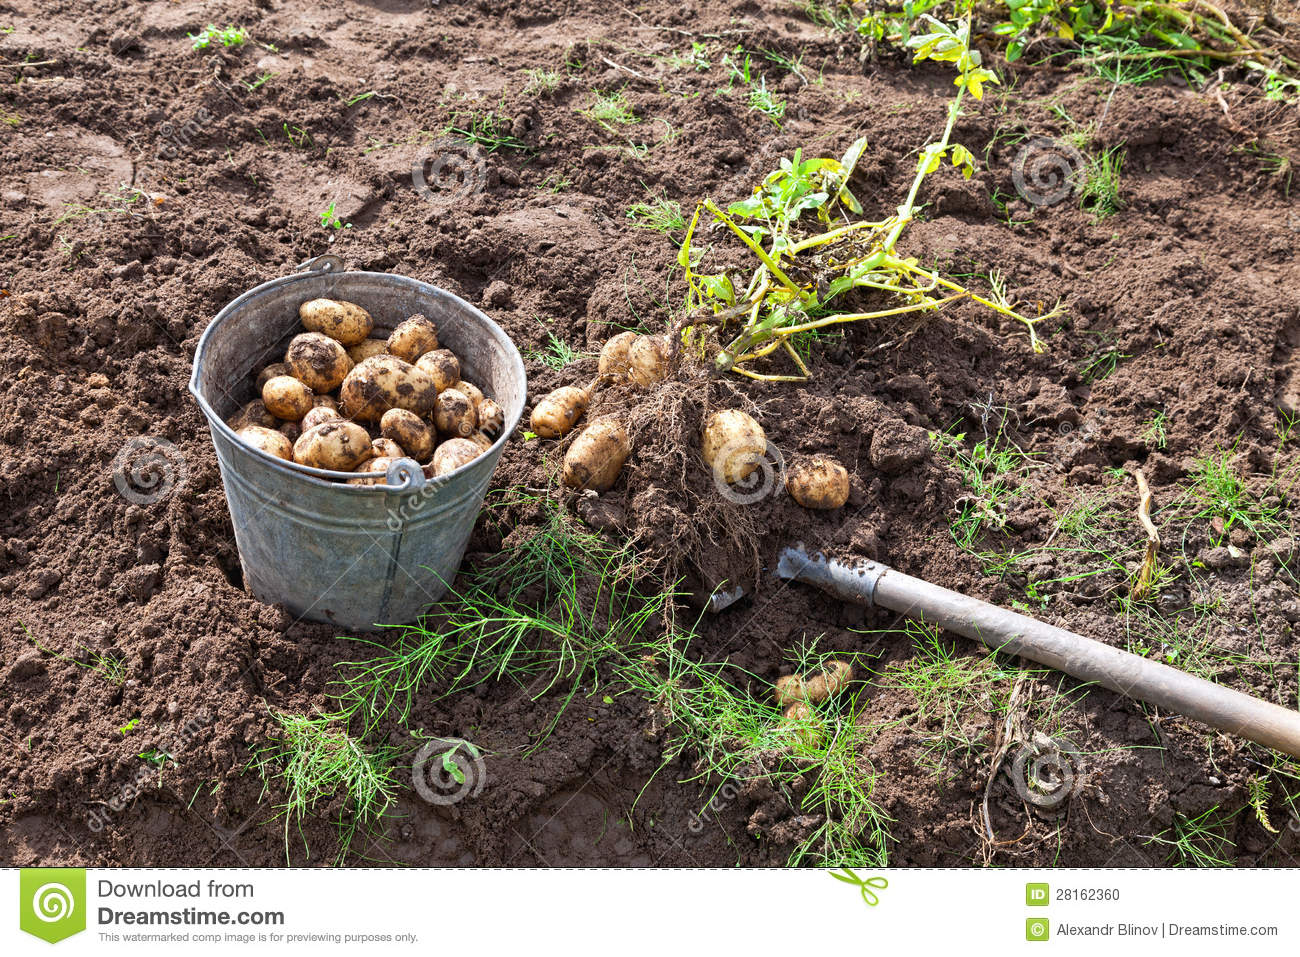 Harvesting Potatoes Stock Photo - Image: 28162360